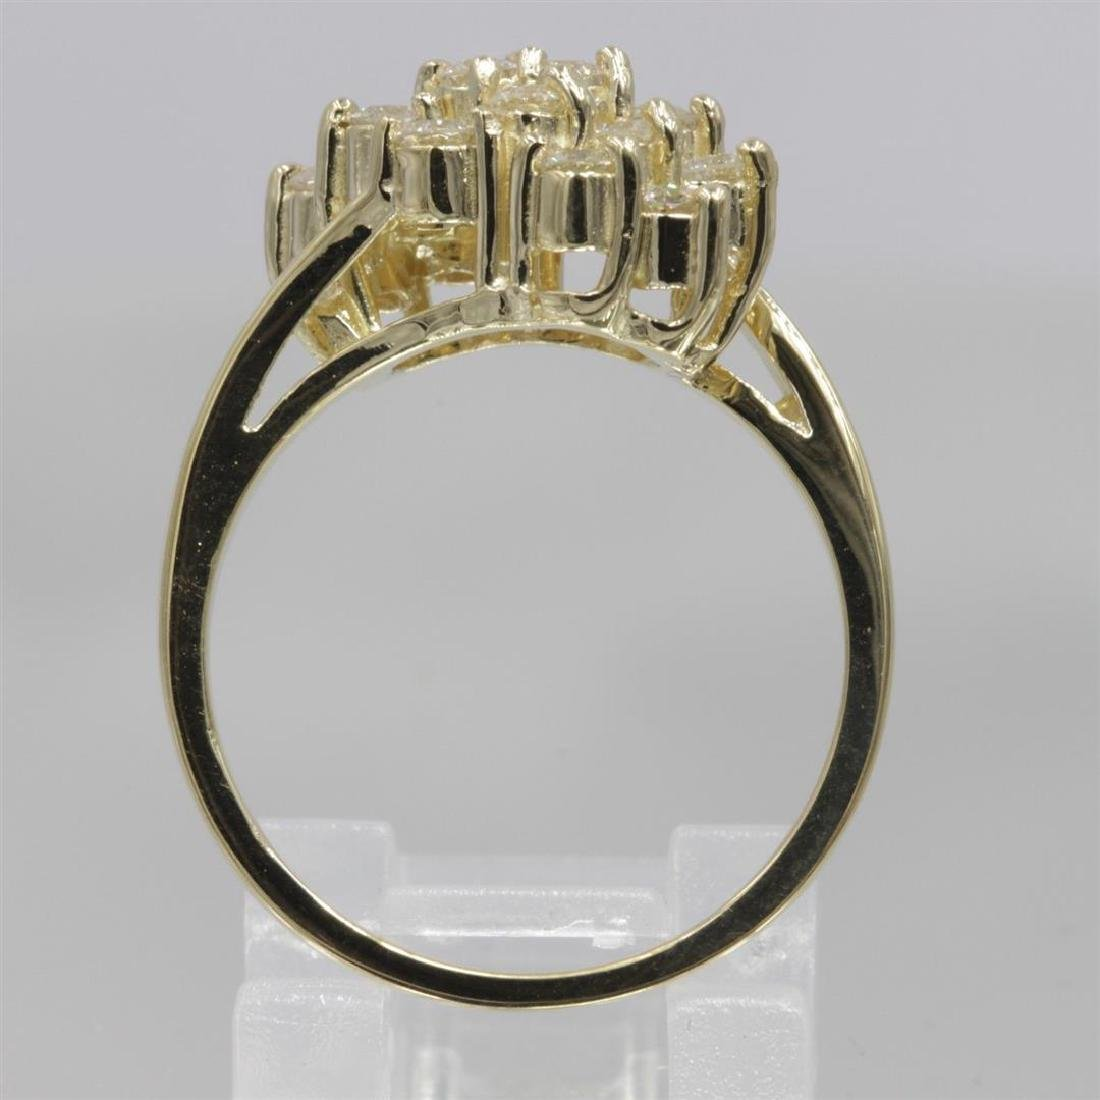 14KT Yellow Gold 0.64 ctw Diamond Cluster Ring - 4